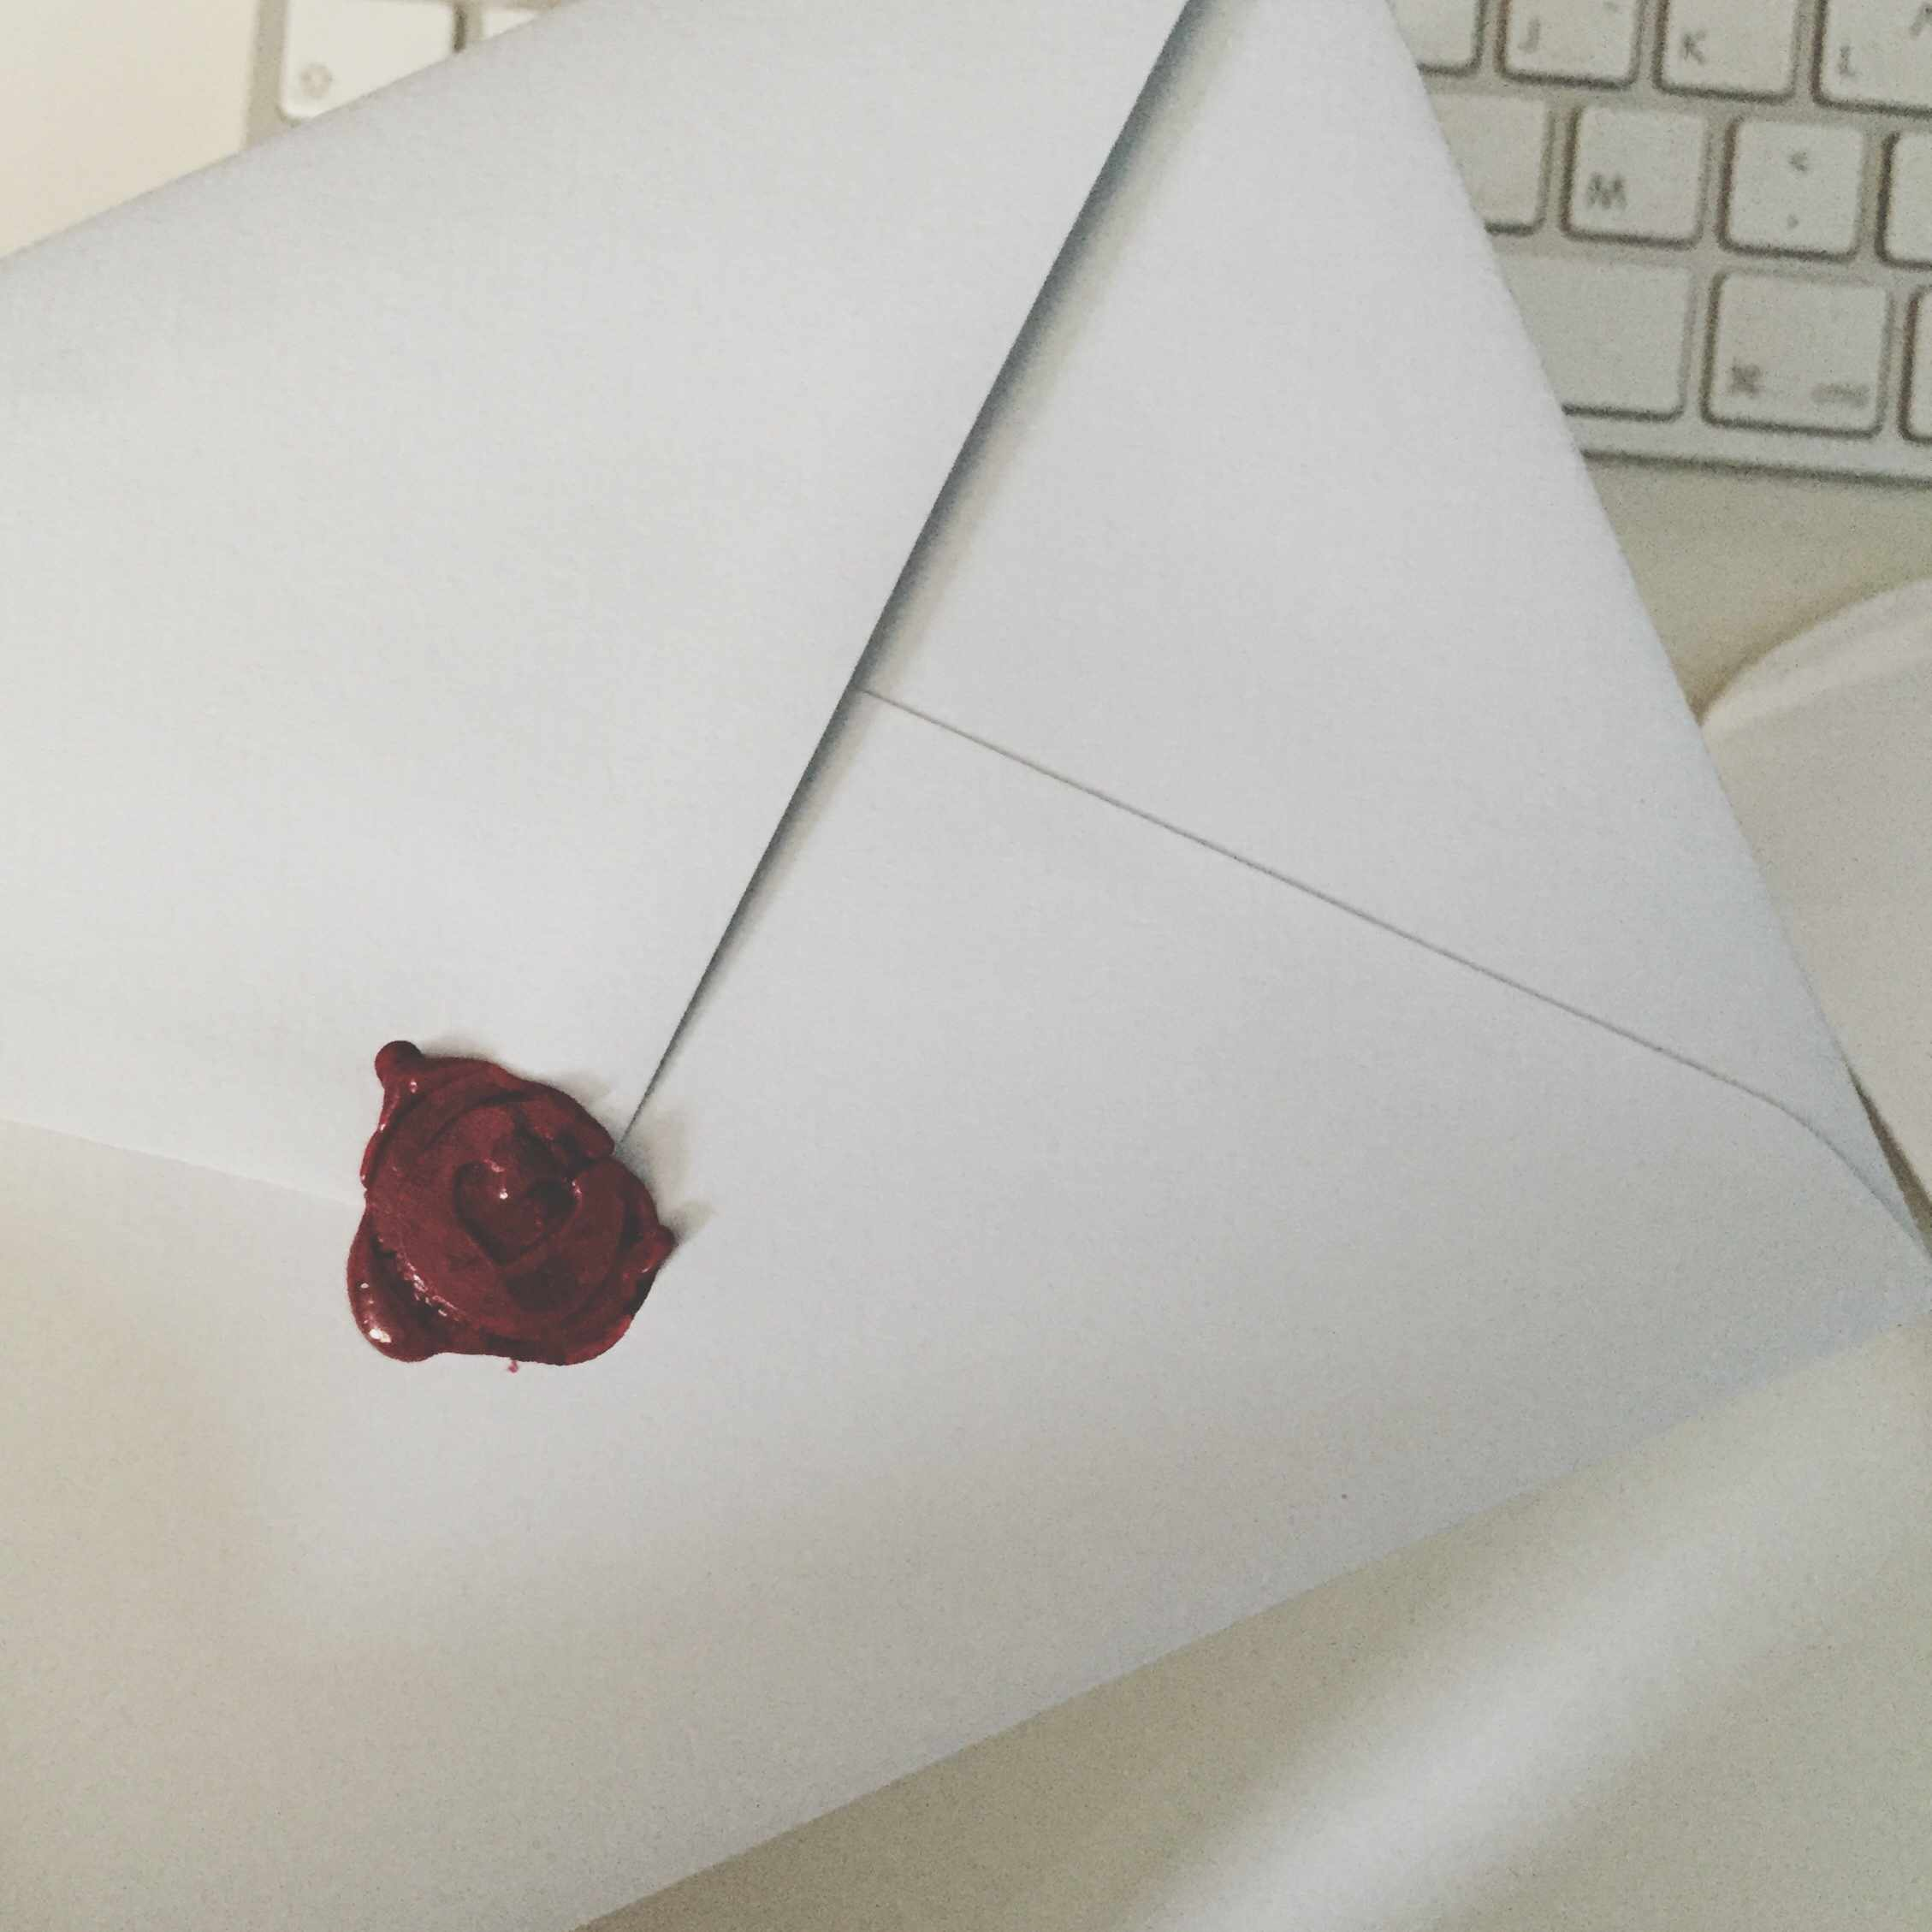 Image of a Letter and a Keyboard